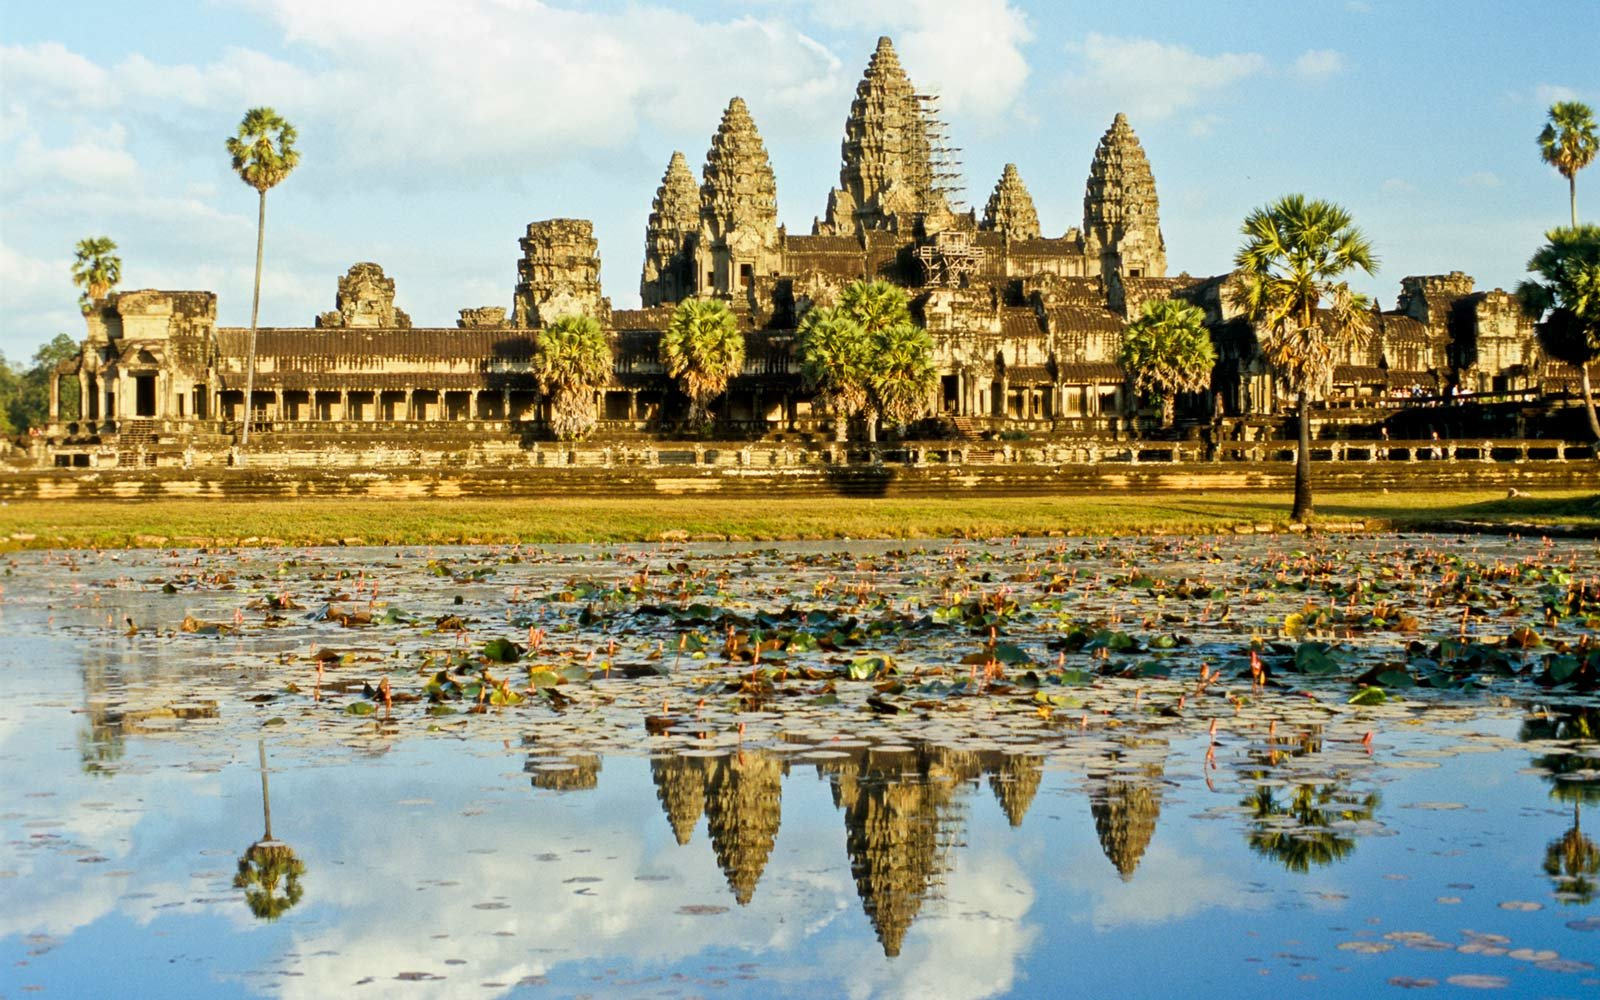 Travelers say this ancient temple is the world's best landmark